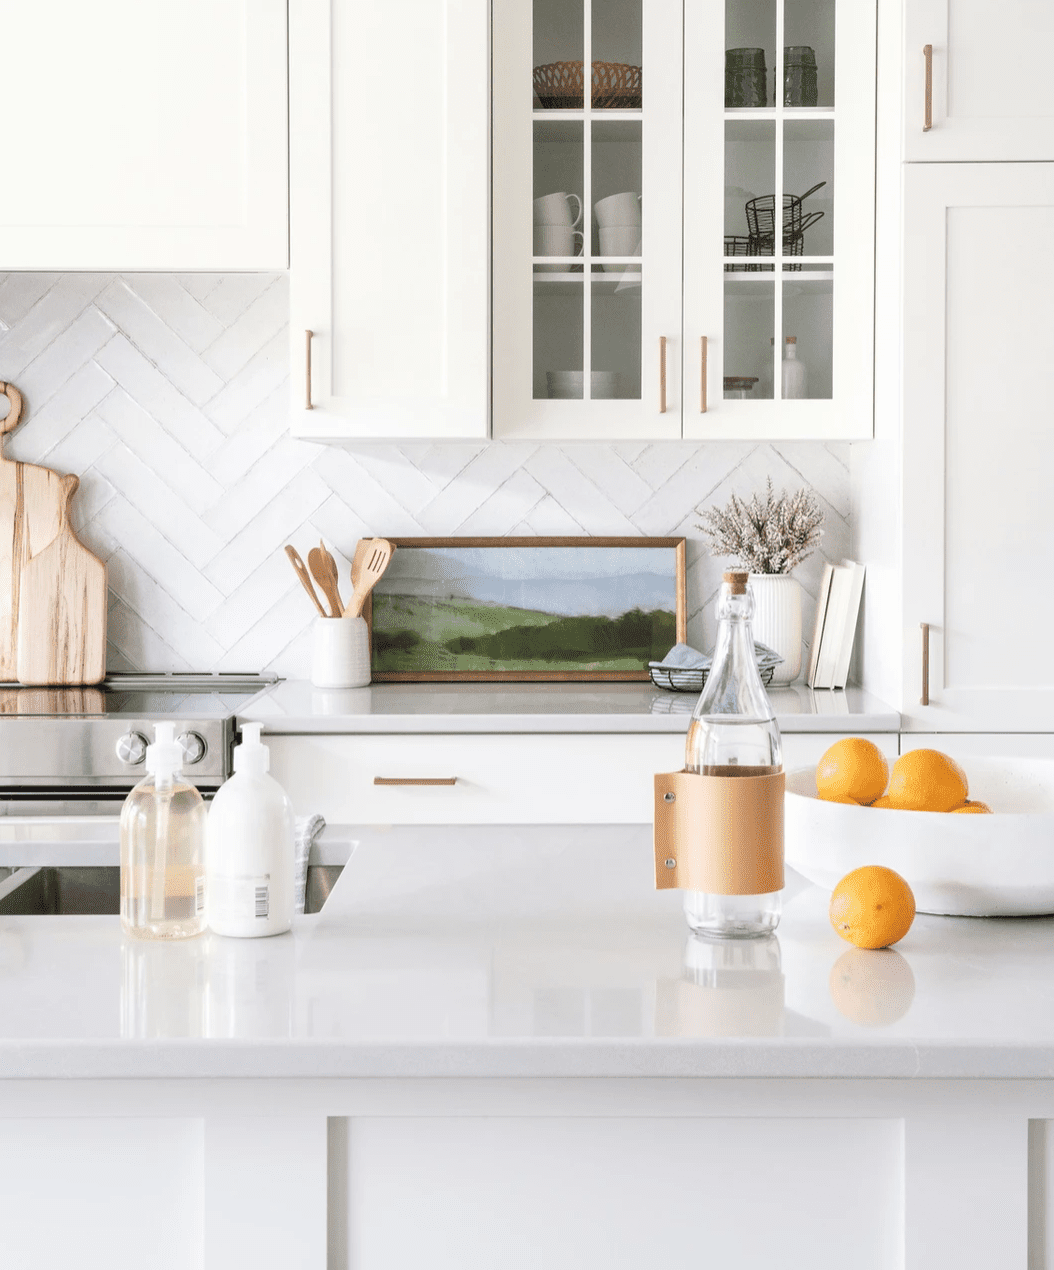 A light-filled kitchen with white cabinets, countertops, and a white tile backsplash